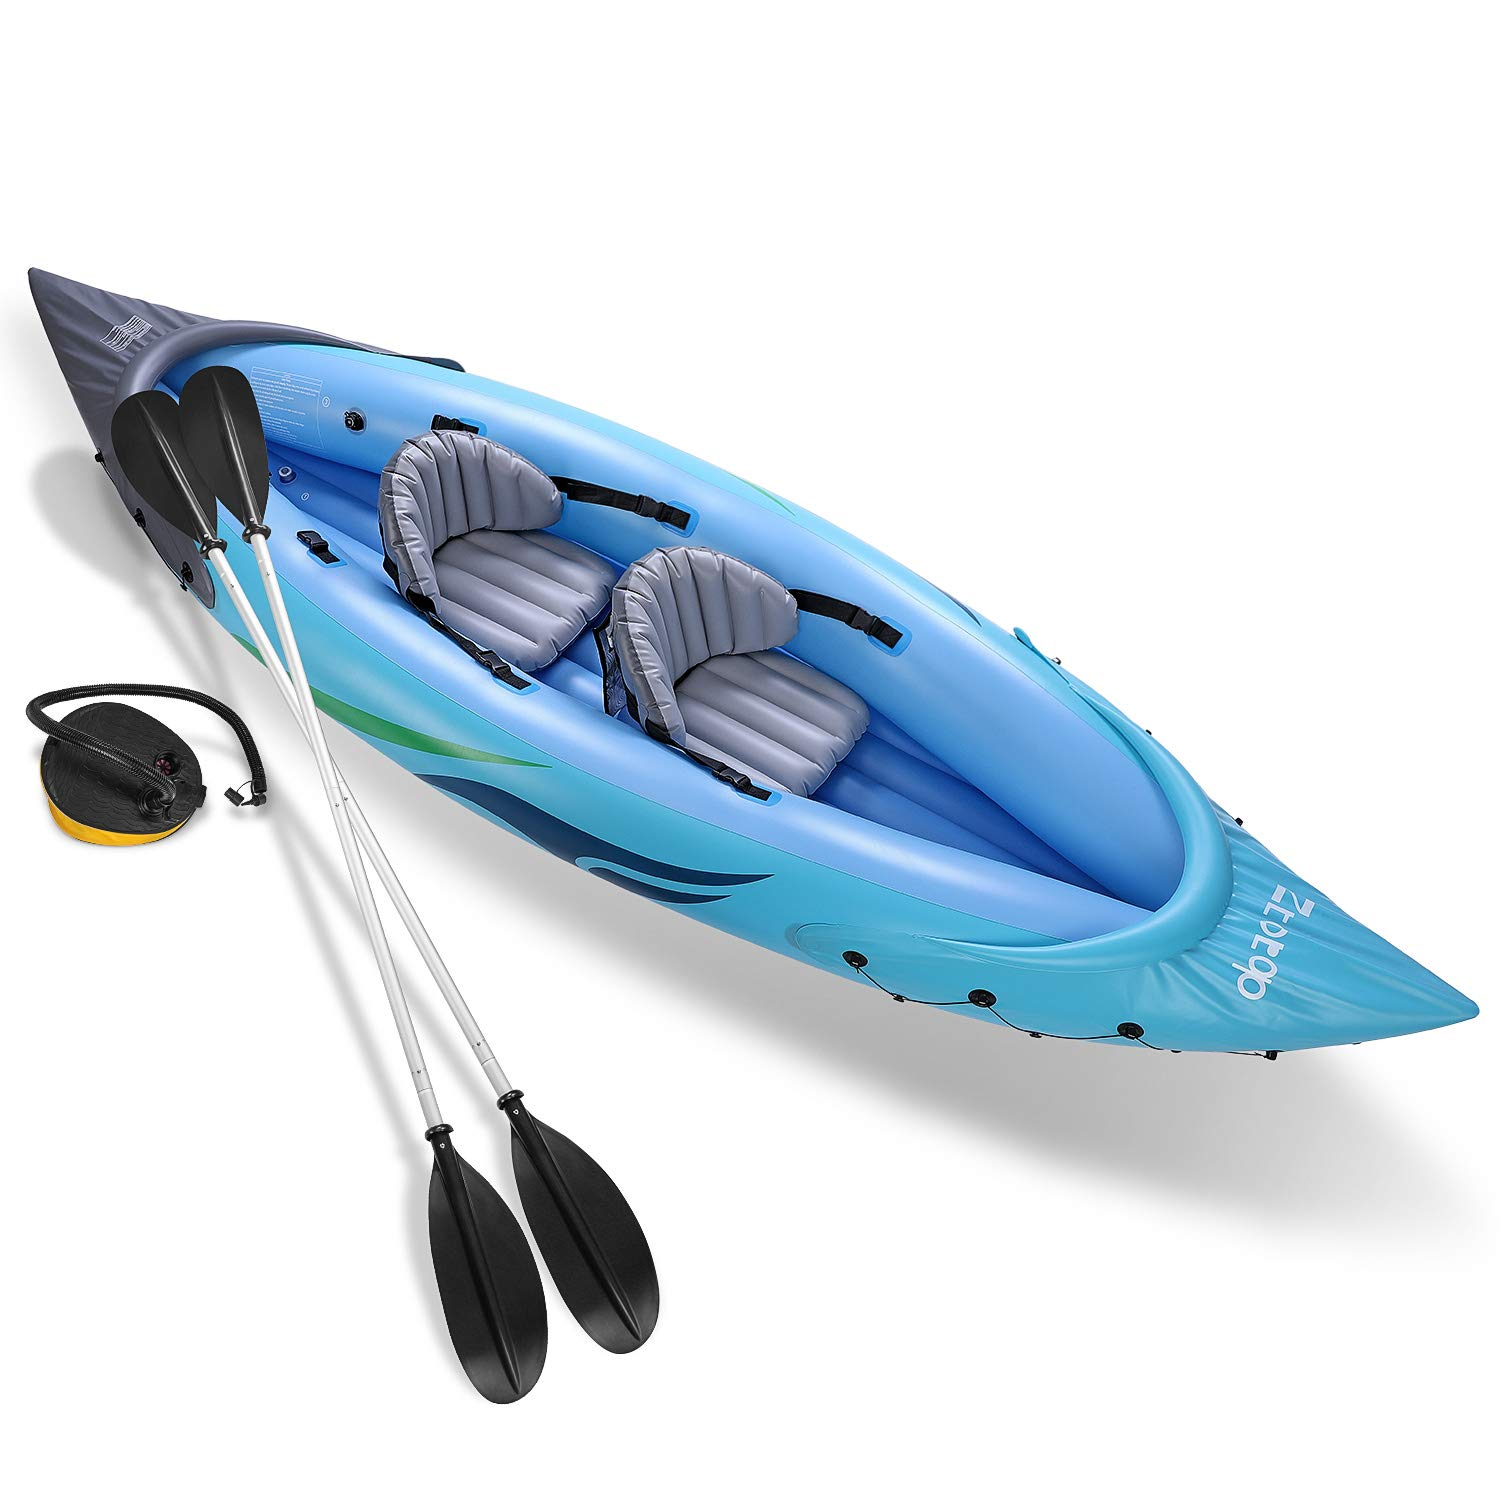 Ztotop 2-Person Inflatable Kayak Set with Inflatable Boat,Two Aluminum Oars and High Output Air Foot Pump by Ztot0p